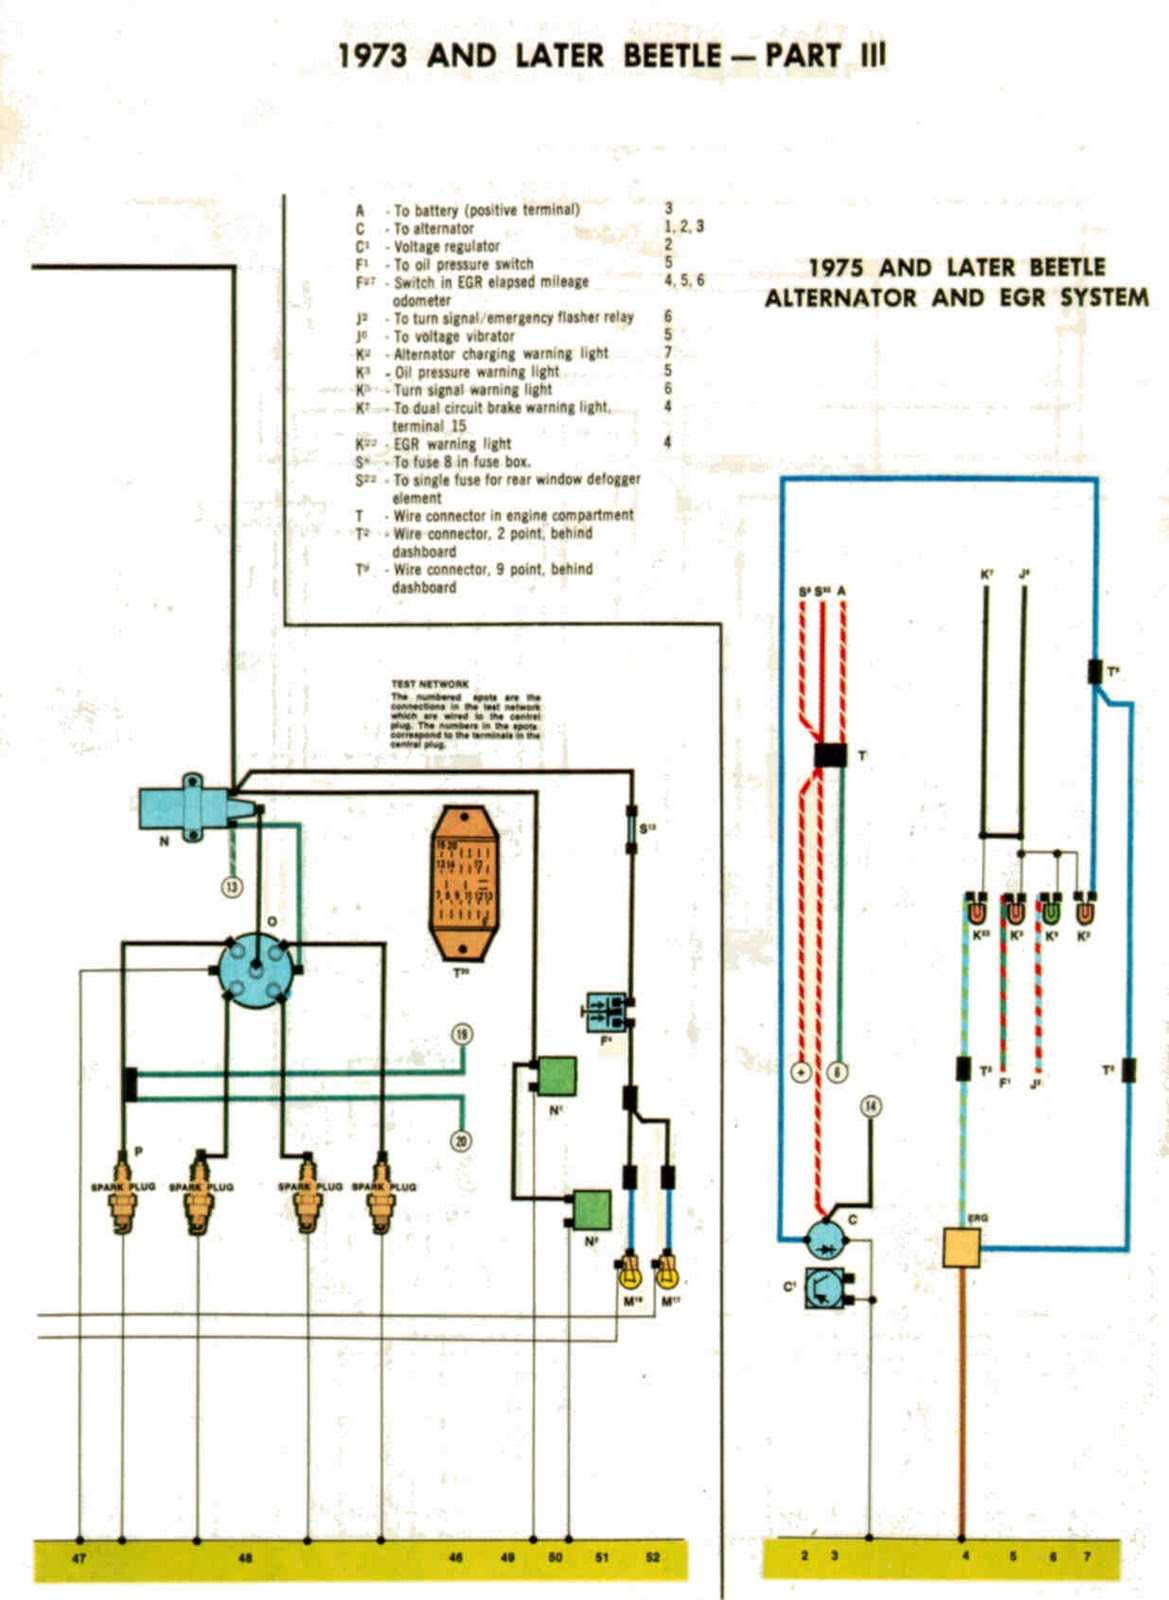 New Beetle Wiring Diagram Fishbone Example For Manufacturing 73 Vw Fuel Gauge 38